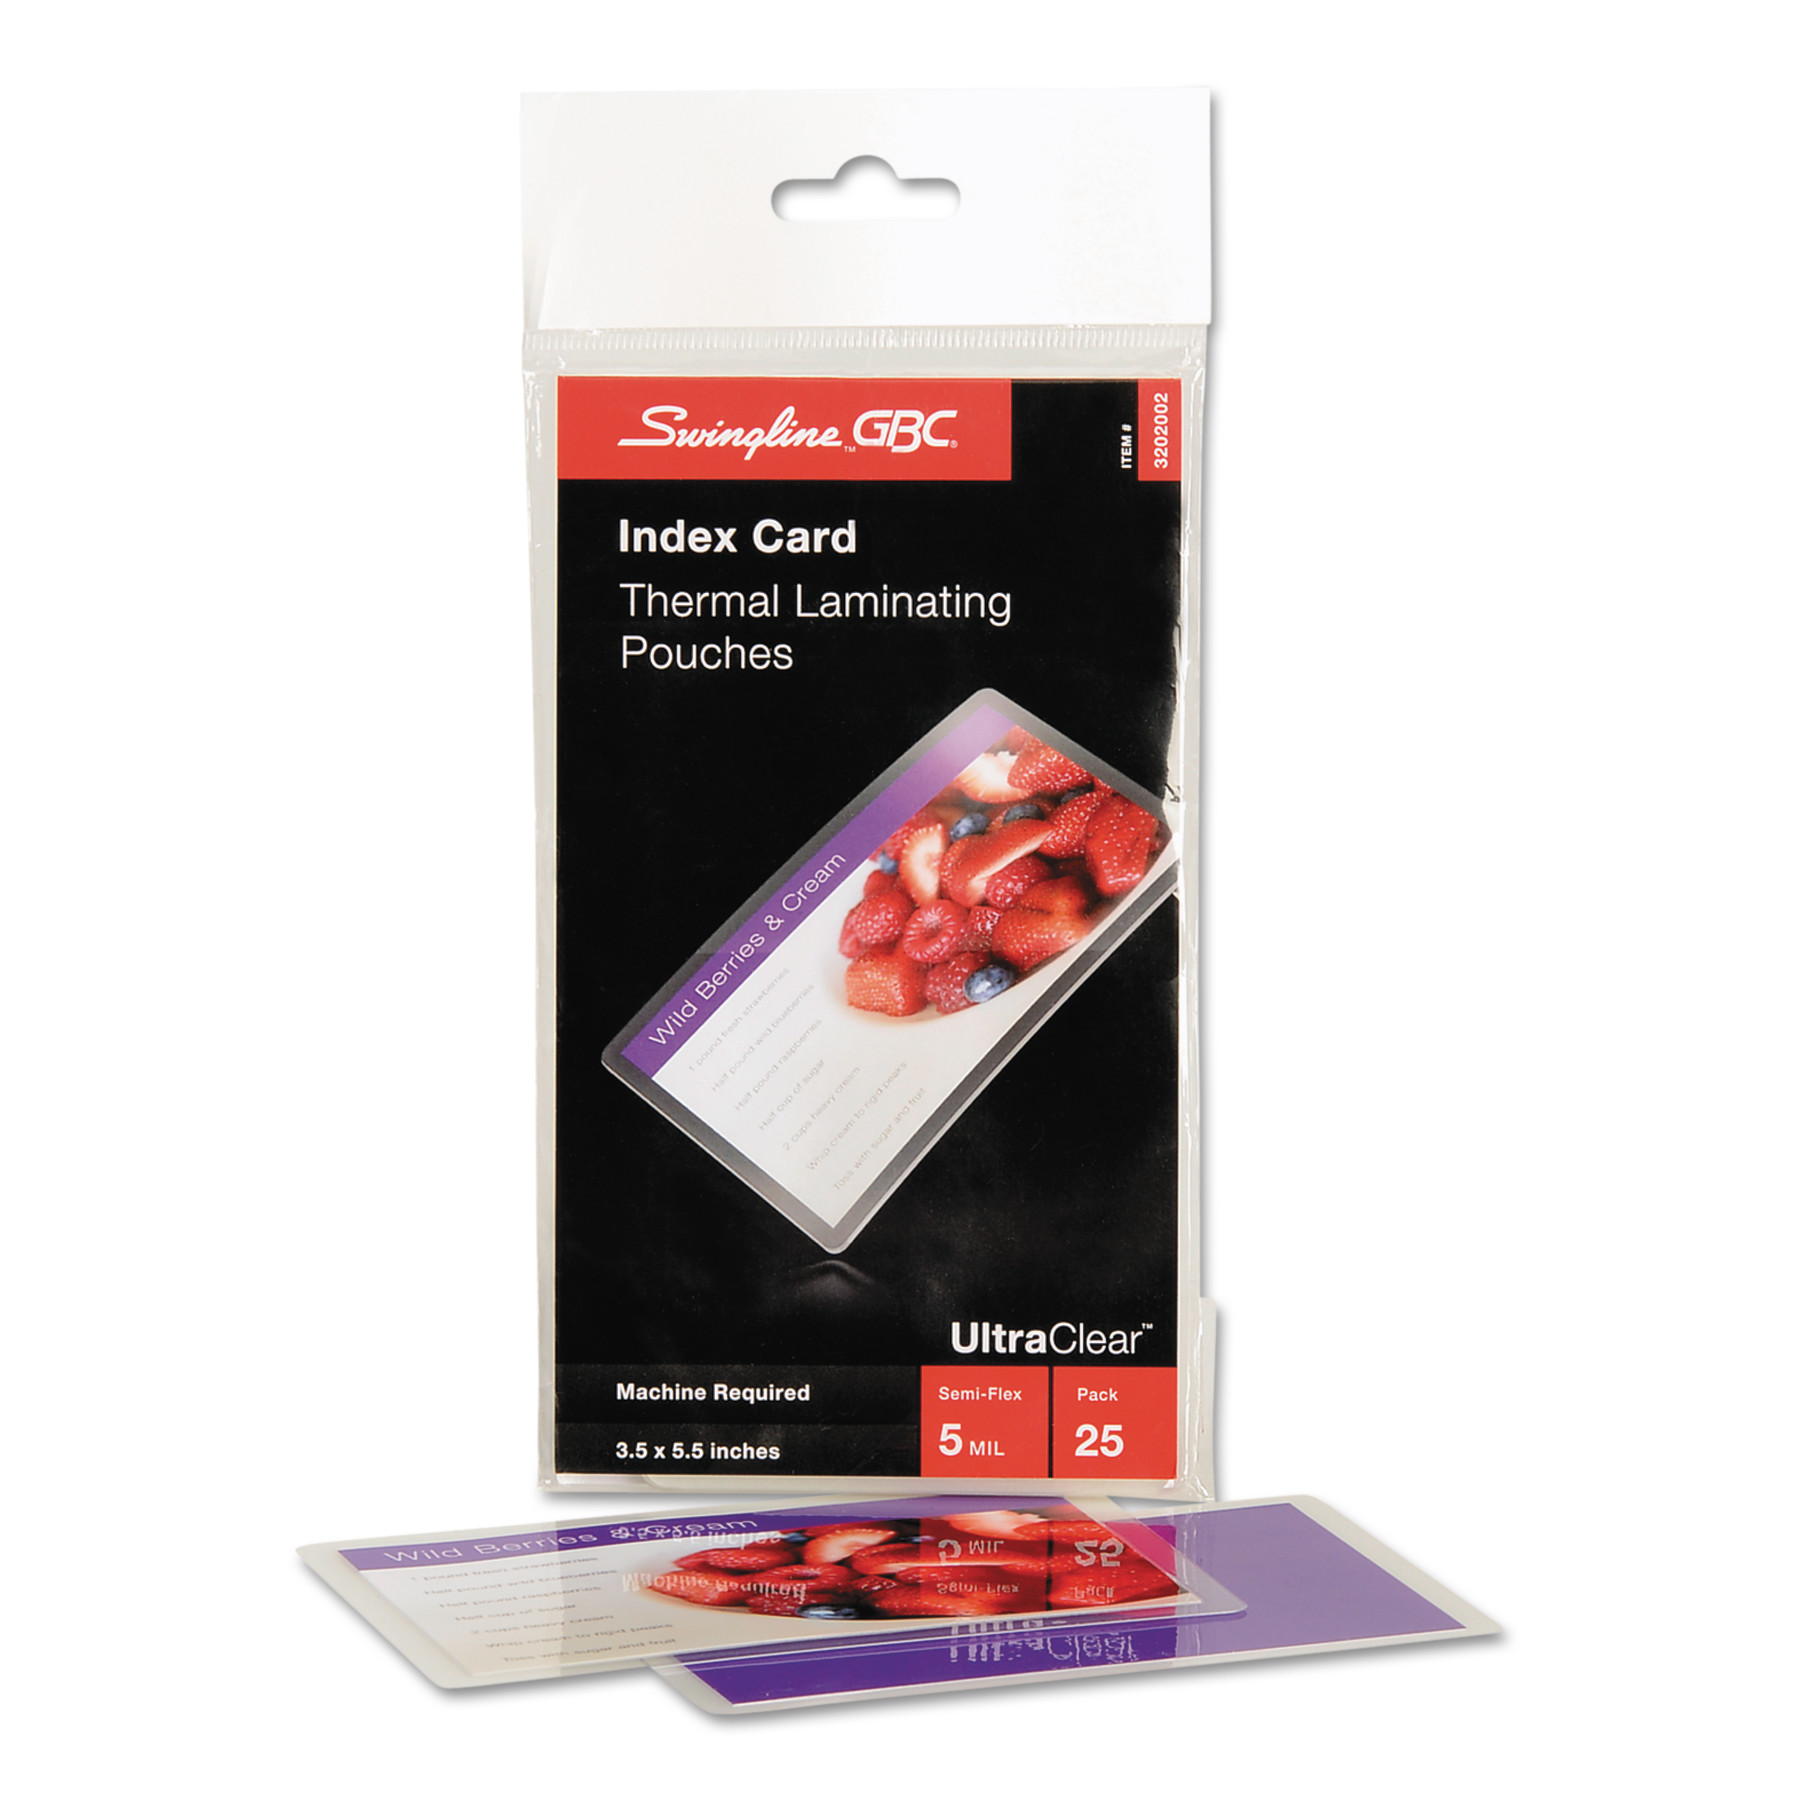 Swingline GBC UltraClear Thermal Laminating Pouches, 5mil, 5 1/2 x 3 1/2, Index Card, 25/PK -SWI3202002